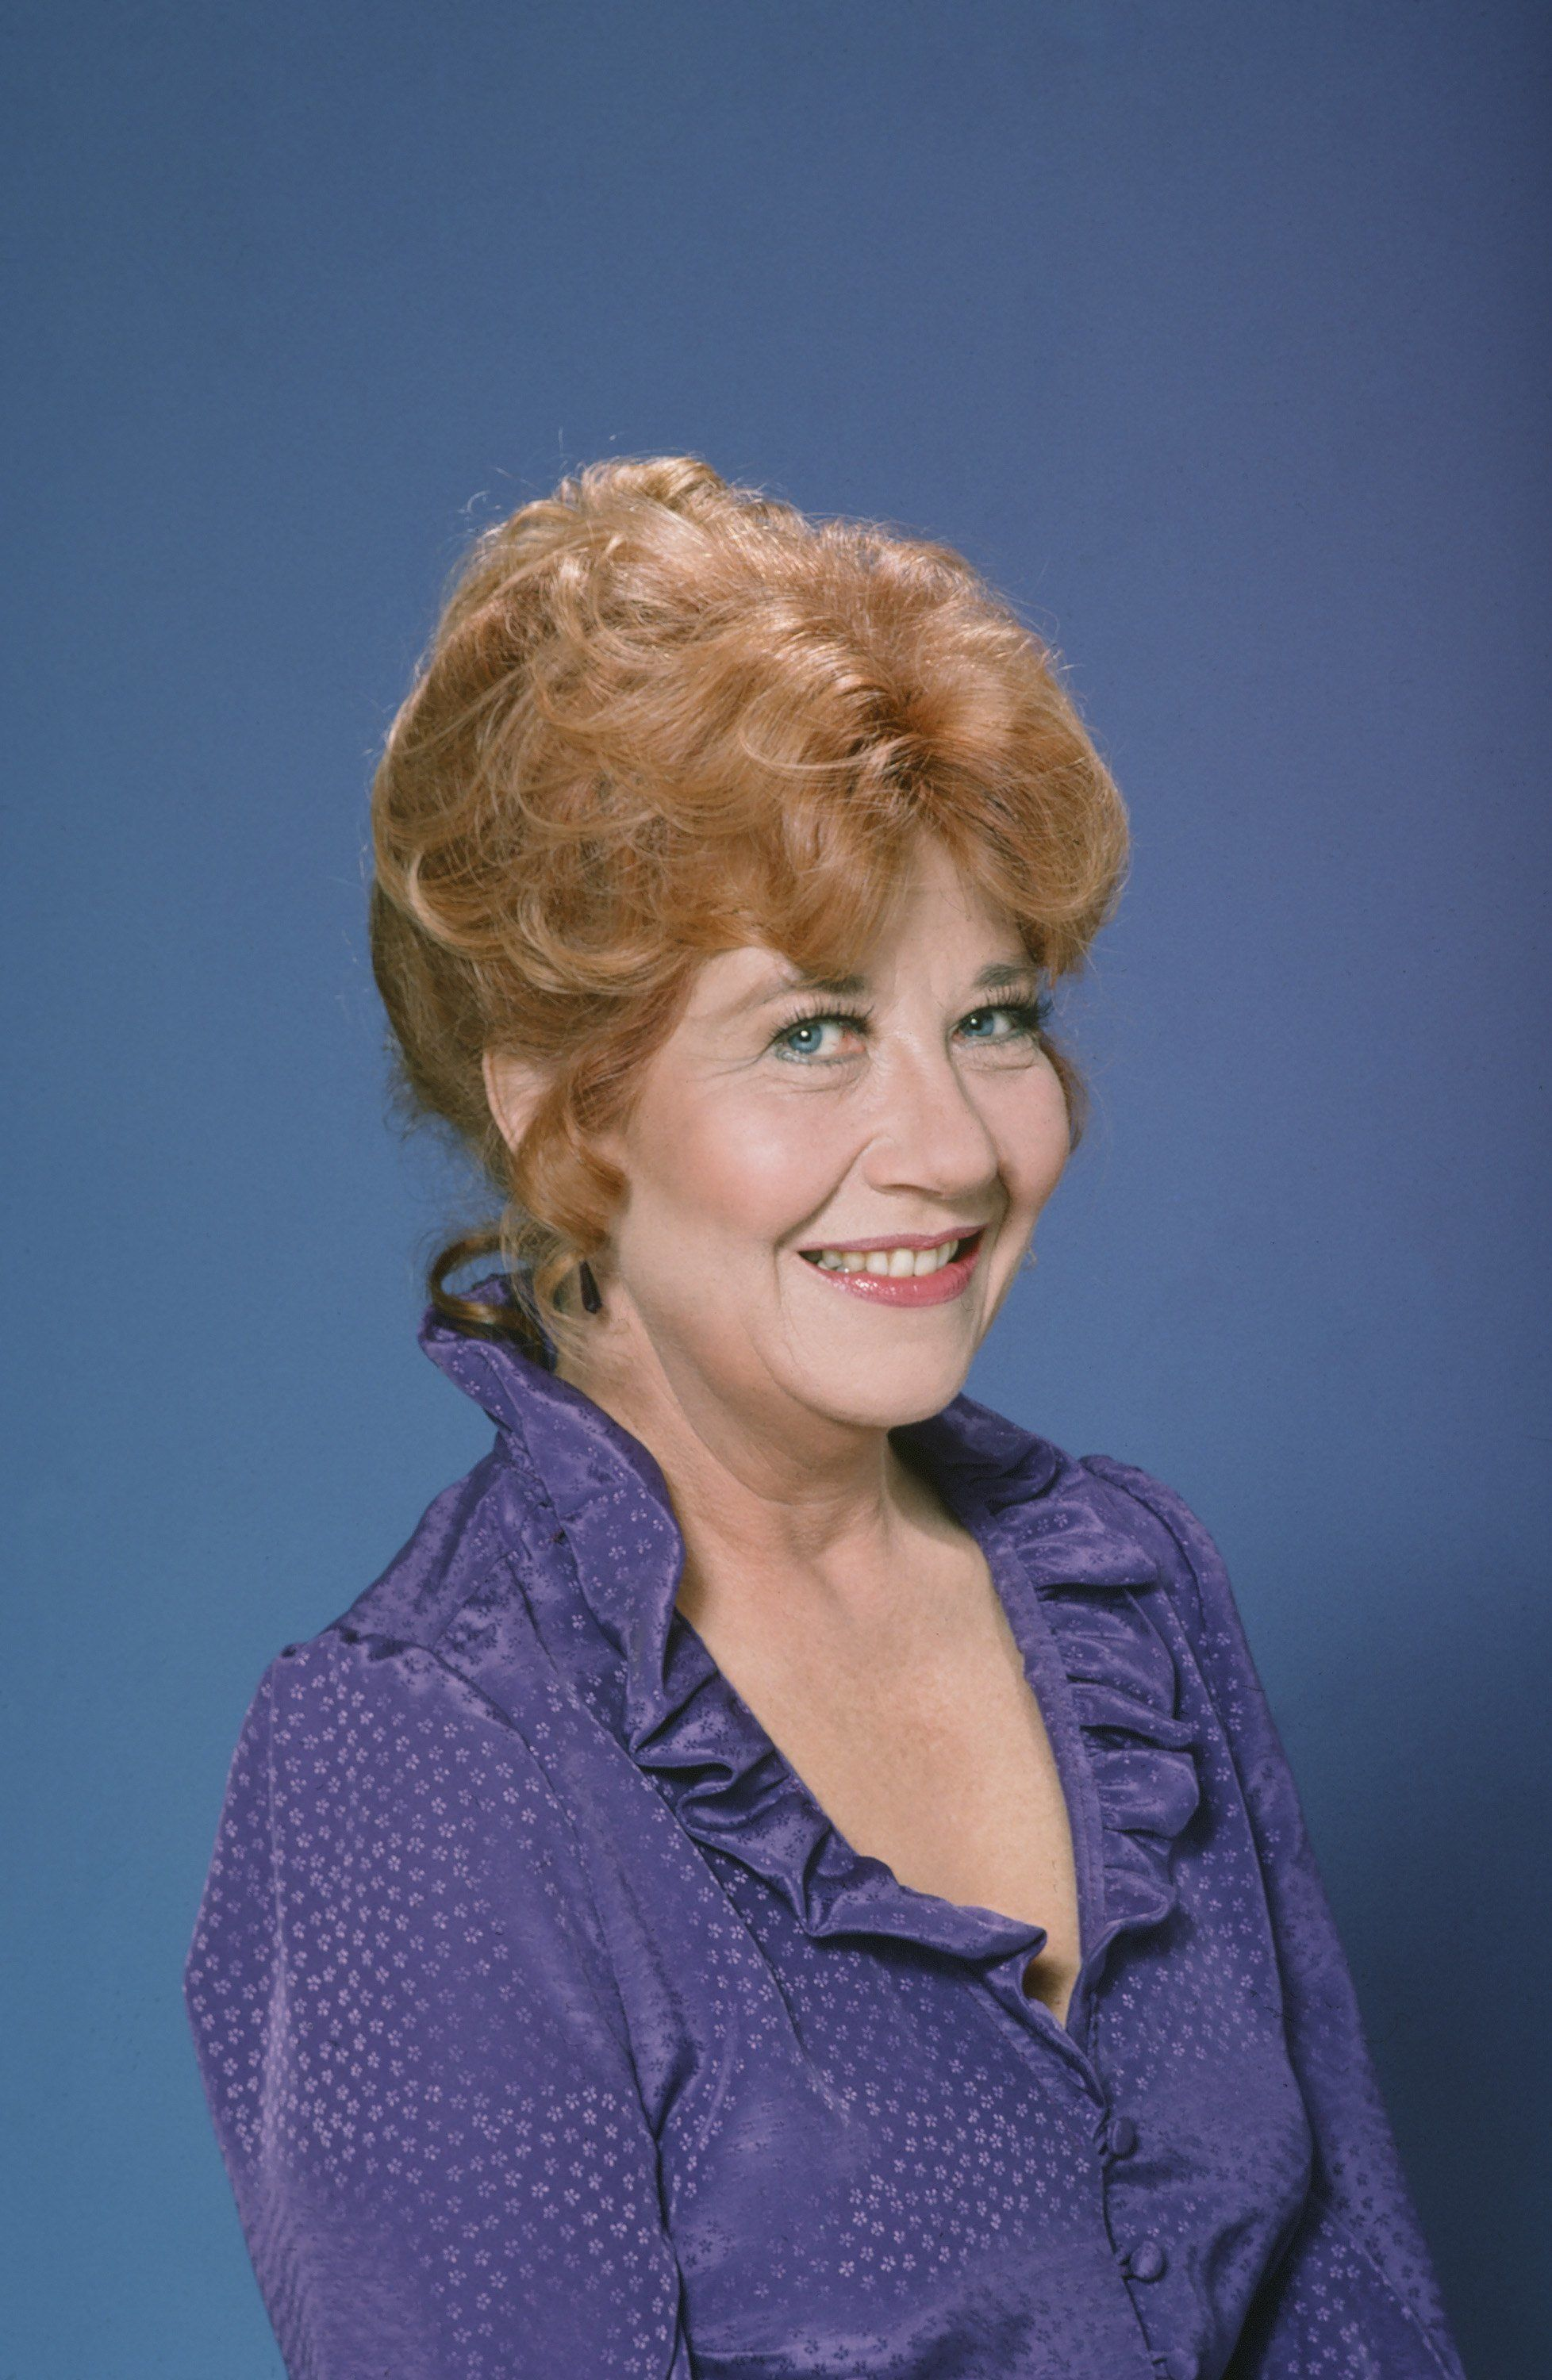 THE FACTS OF LIFE -- Season 5 -- Pictured: Charlotte Rae as Mrs. Edna Ann Garrett -- Photo by: NBC/NBCU Photo Bank